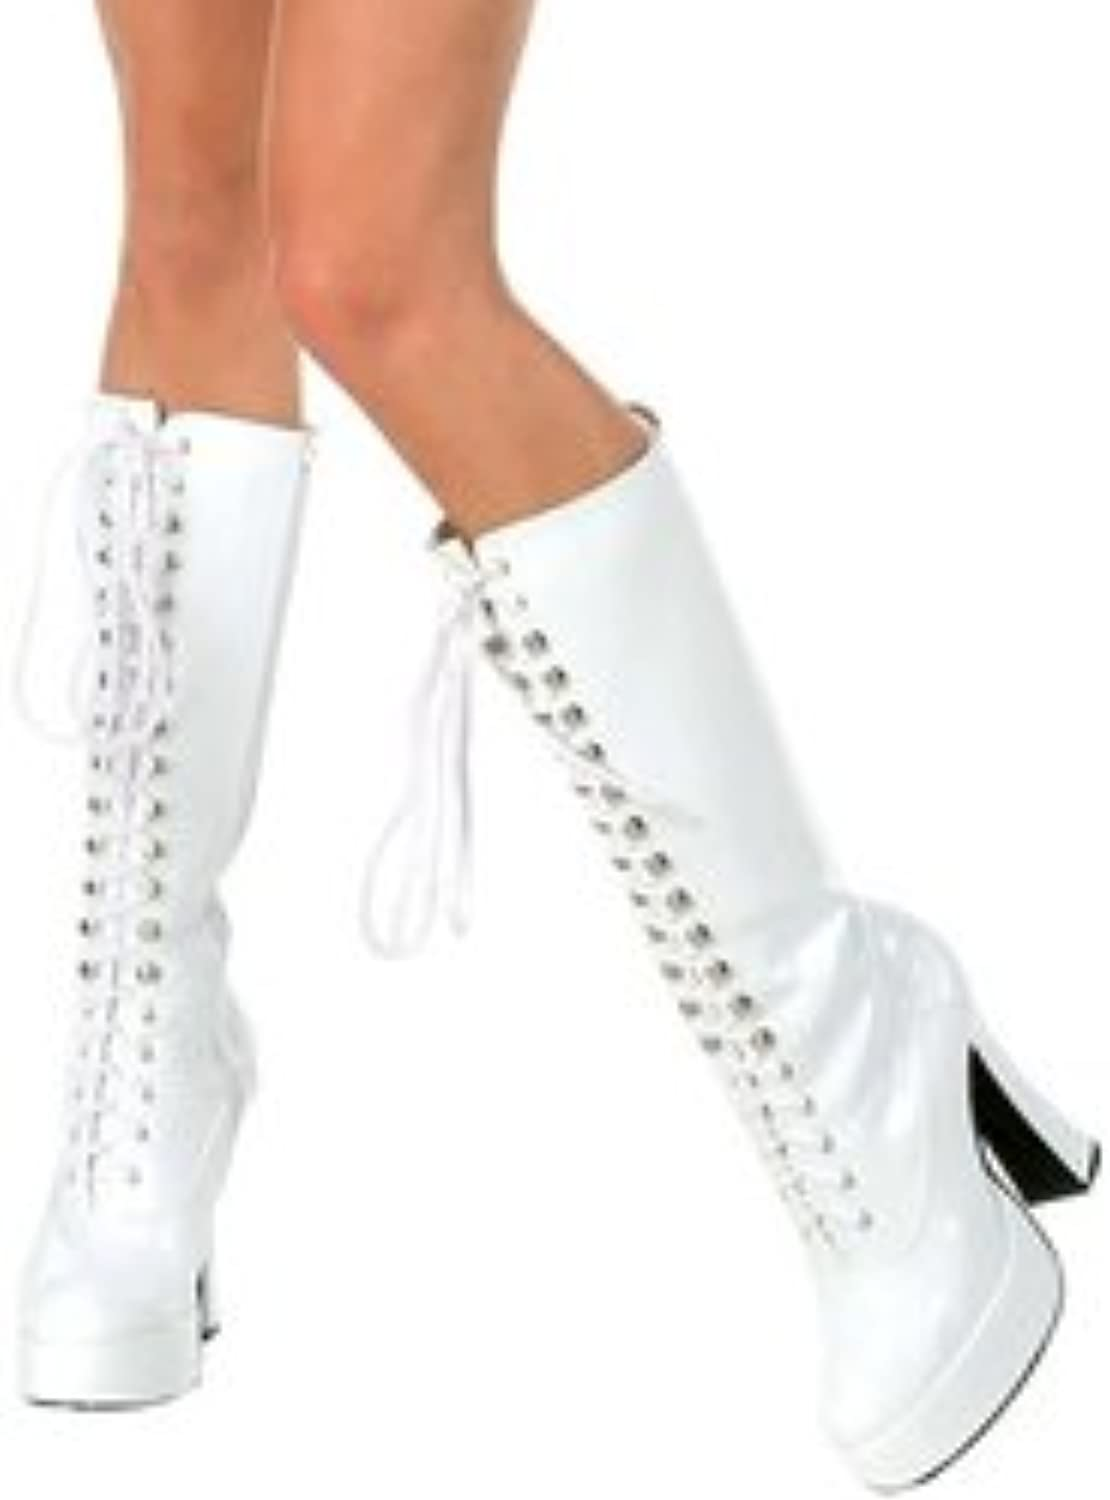 Ellie shoes - Easy (White) Adult Boots, White, 6